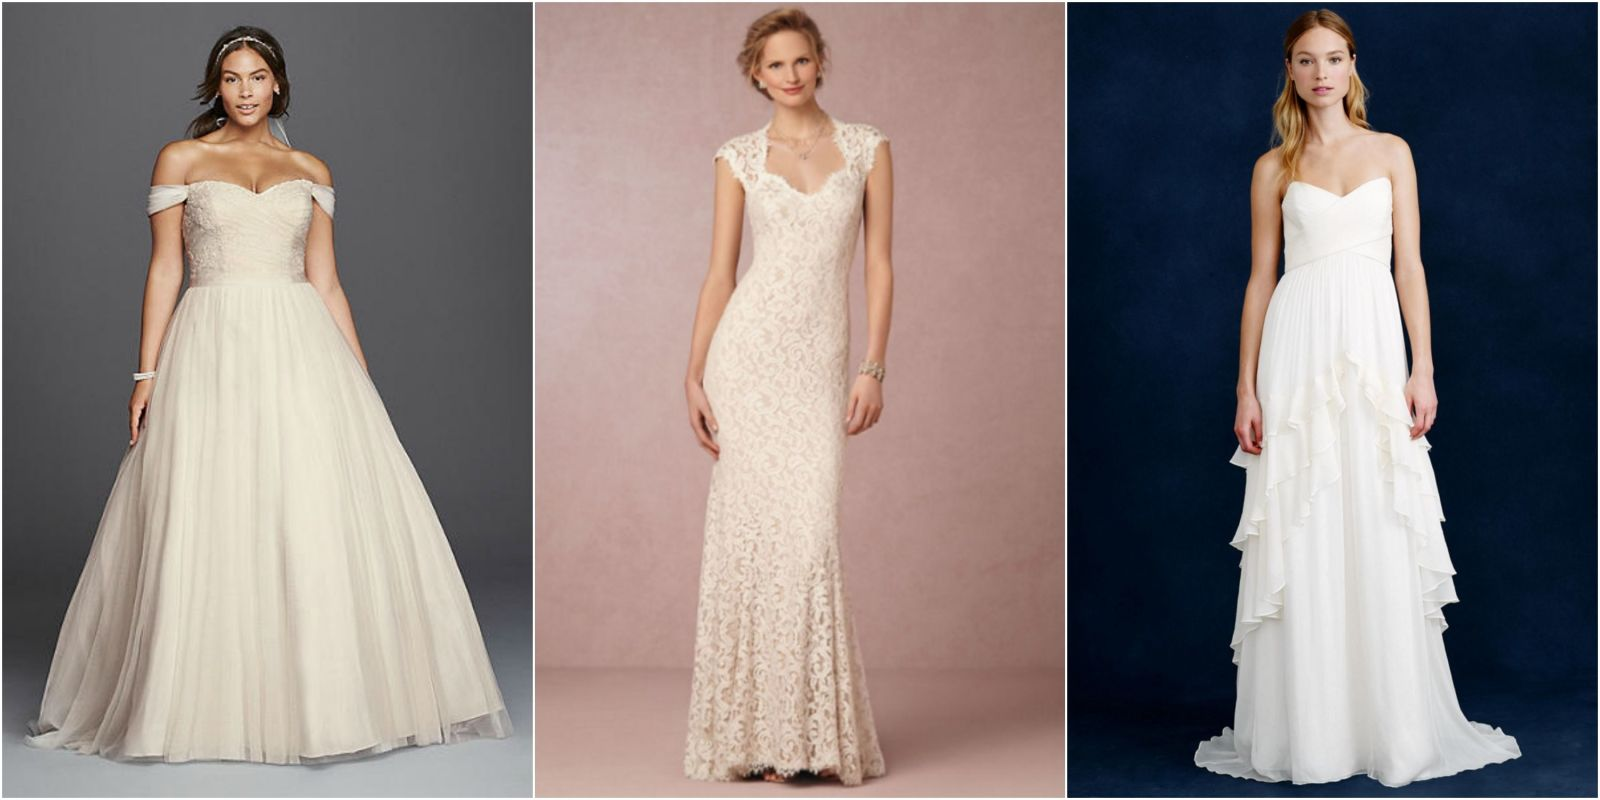 20 cheap wedding dresses under 1000 that look expensive 20 cheap wedding dresses under 1000 that look expensive affordable bridal gowns ombrellifo Gallery